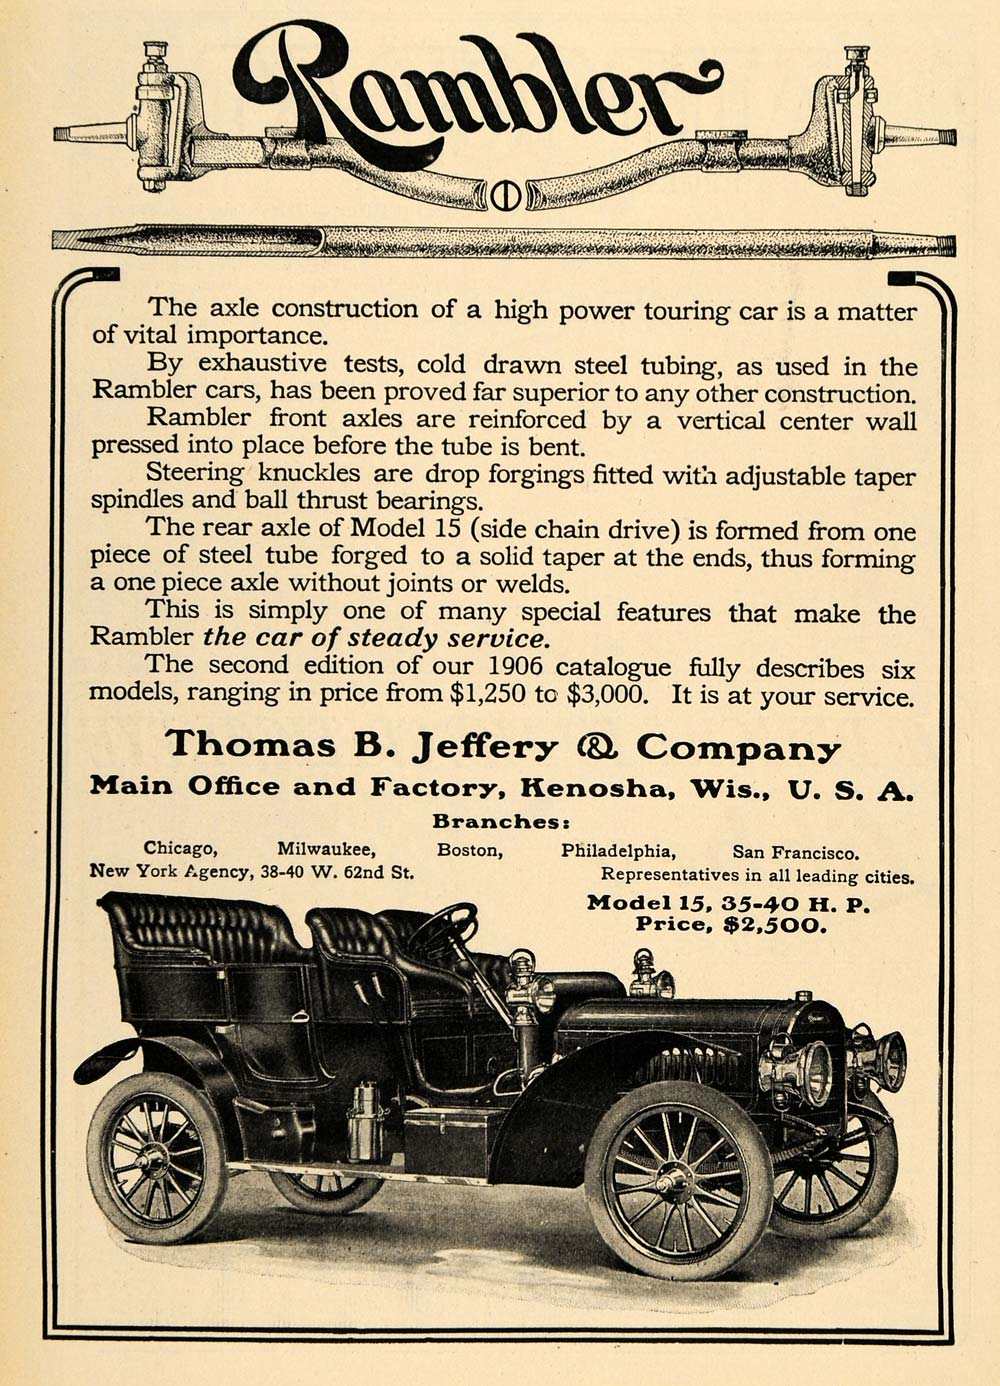 1906 Ad Rambler Axle Construction Model 15 Motor Cars - ORIGINAL TOM3